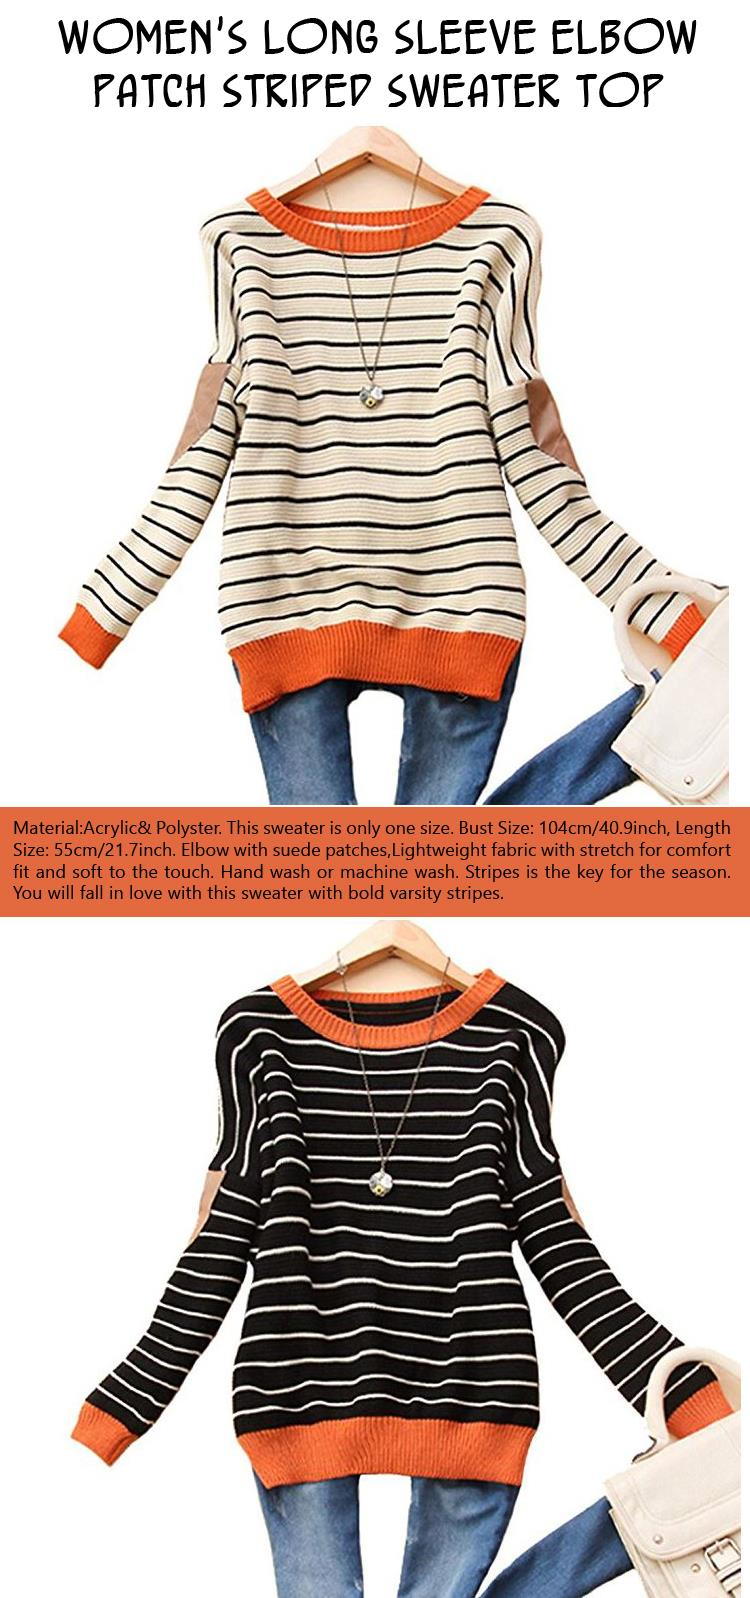 womens-long-sleeve-elbow-patch-striped-sweater-top